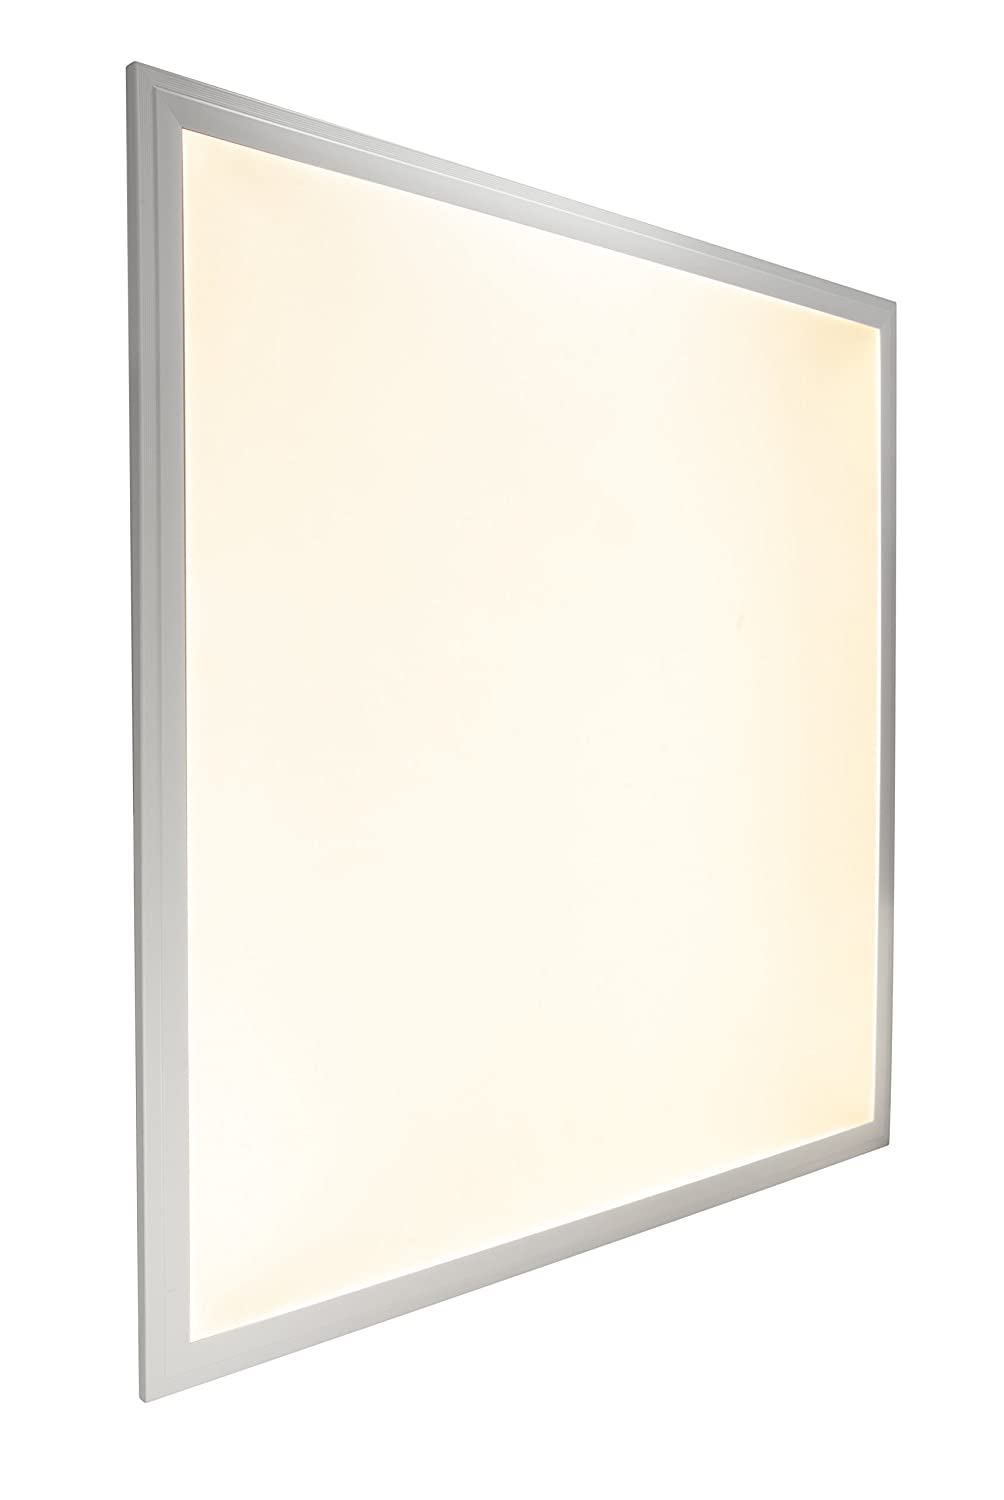 48W WARM WHITE LED Ceiling Panel Flat Tile Panel Downlight 3500k Super Bright 600 x 600 Premium Quality, 3 Years Warranty White Body [Energy Class A++] Long Life Lamp Company